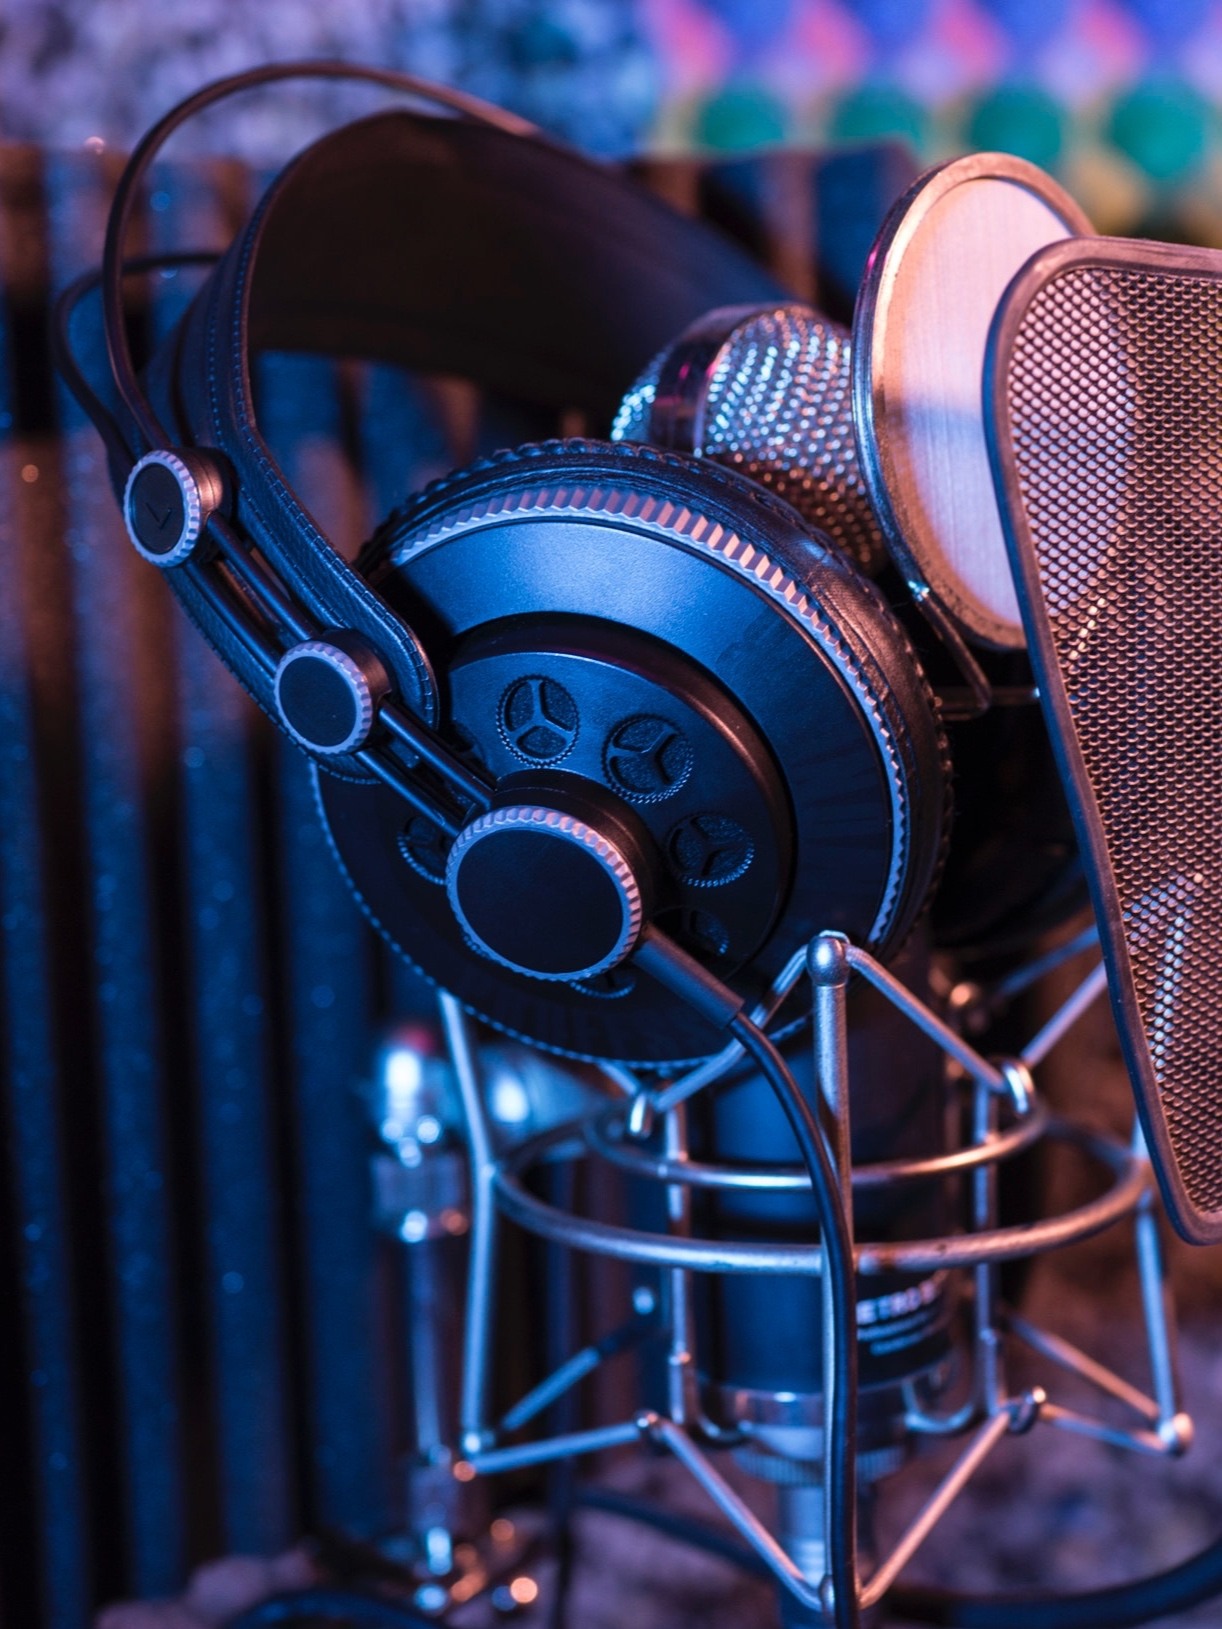 vocal only demos - Starting at $99 / SongIf you already have a track recorded and simply need a vocal, we have professional male and female vocalists available. We specialize in a number of contemporary and classic styles, including Country, Pop, and Rock.